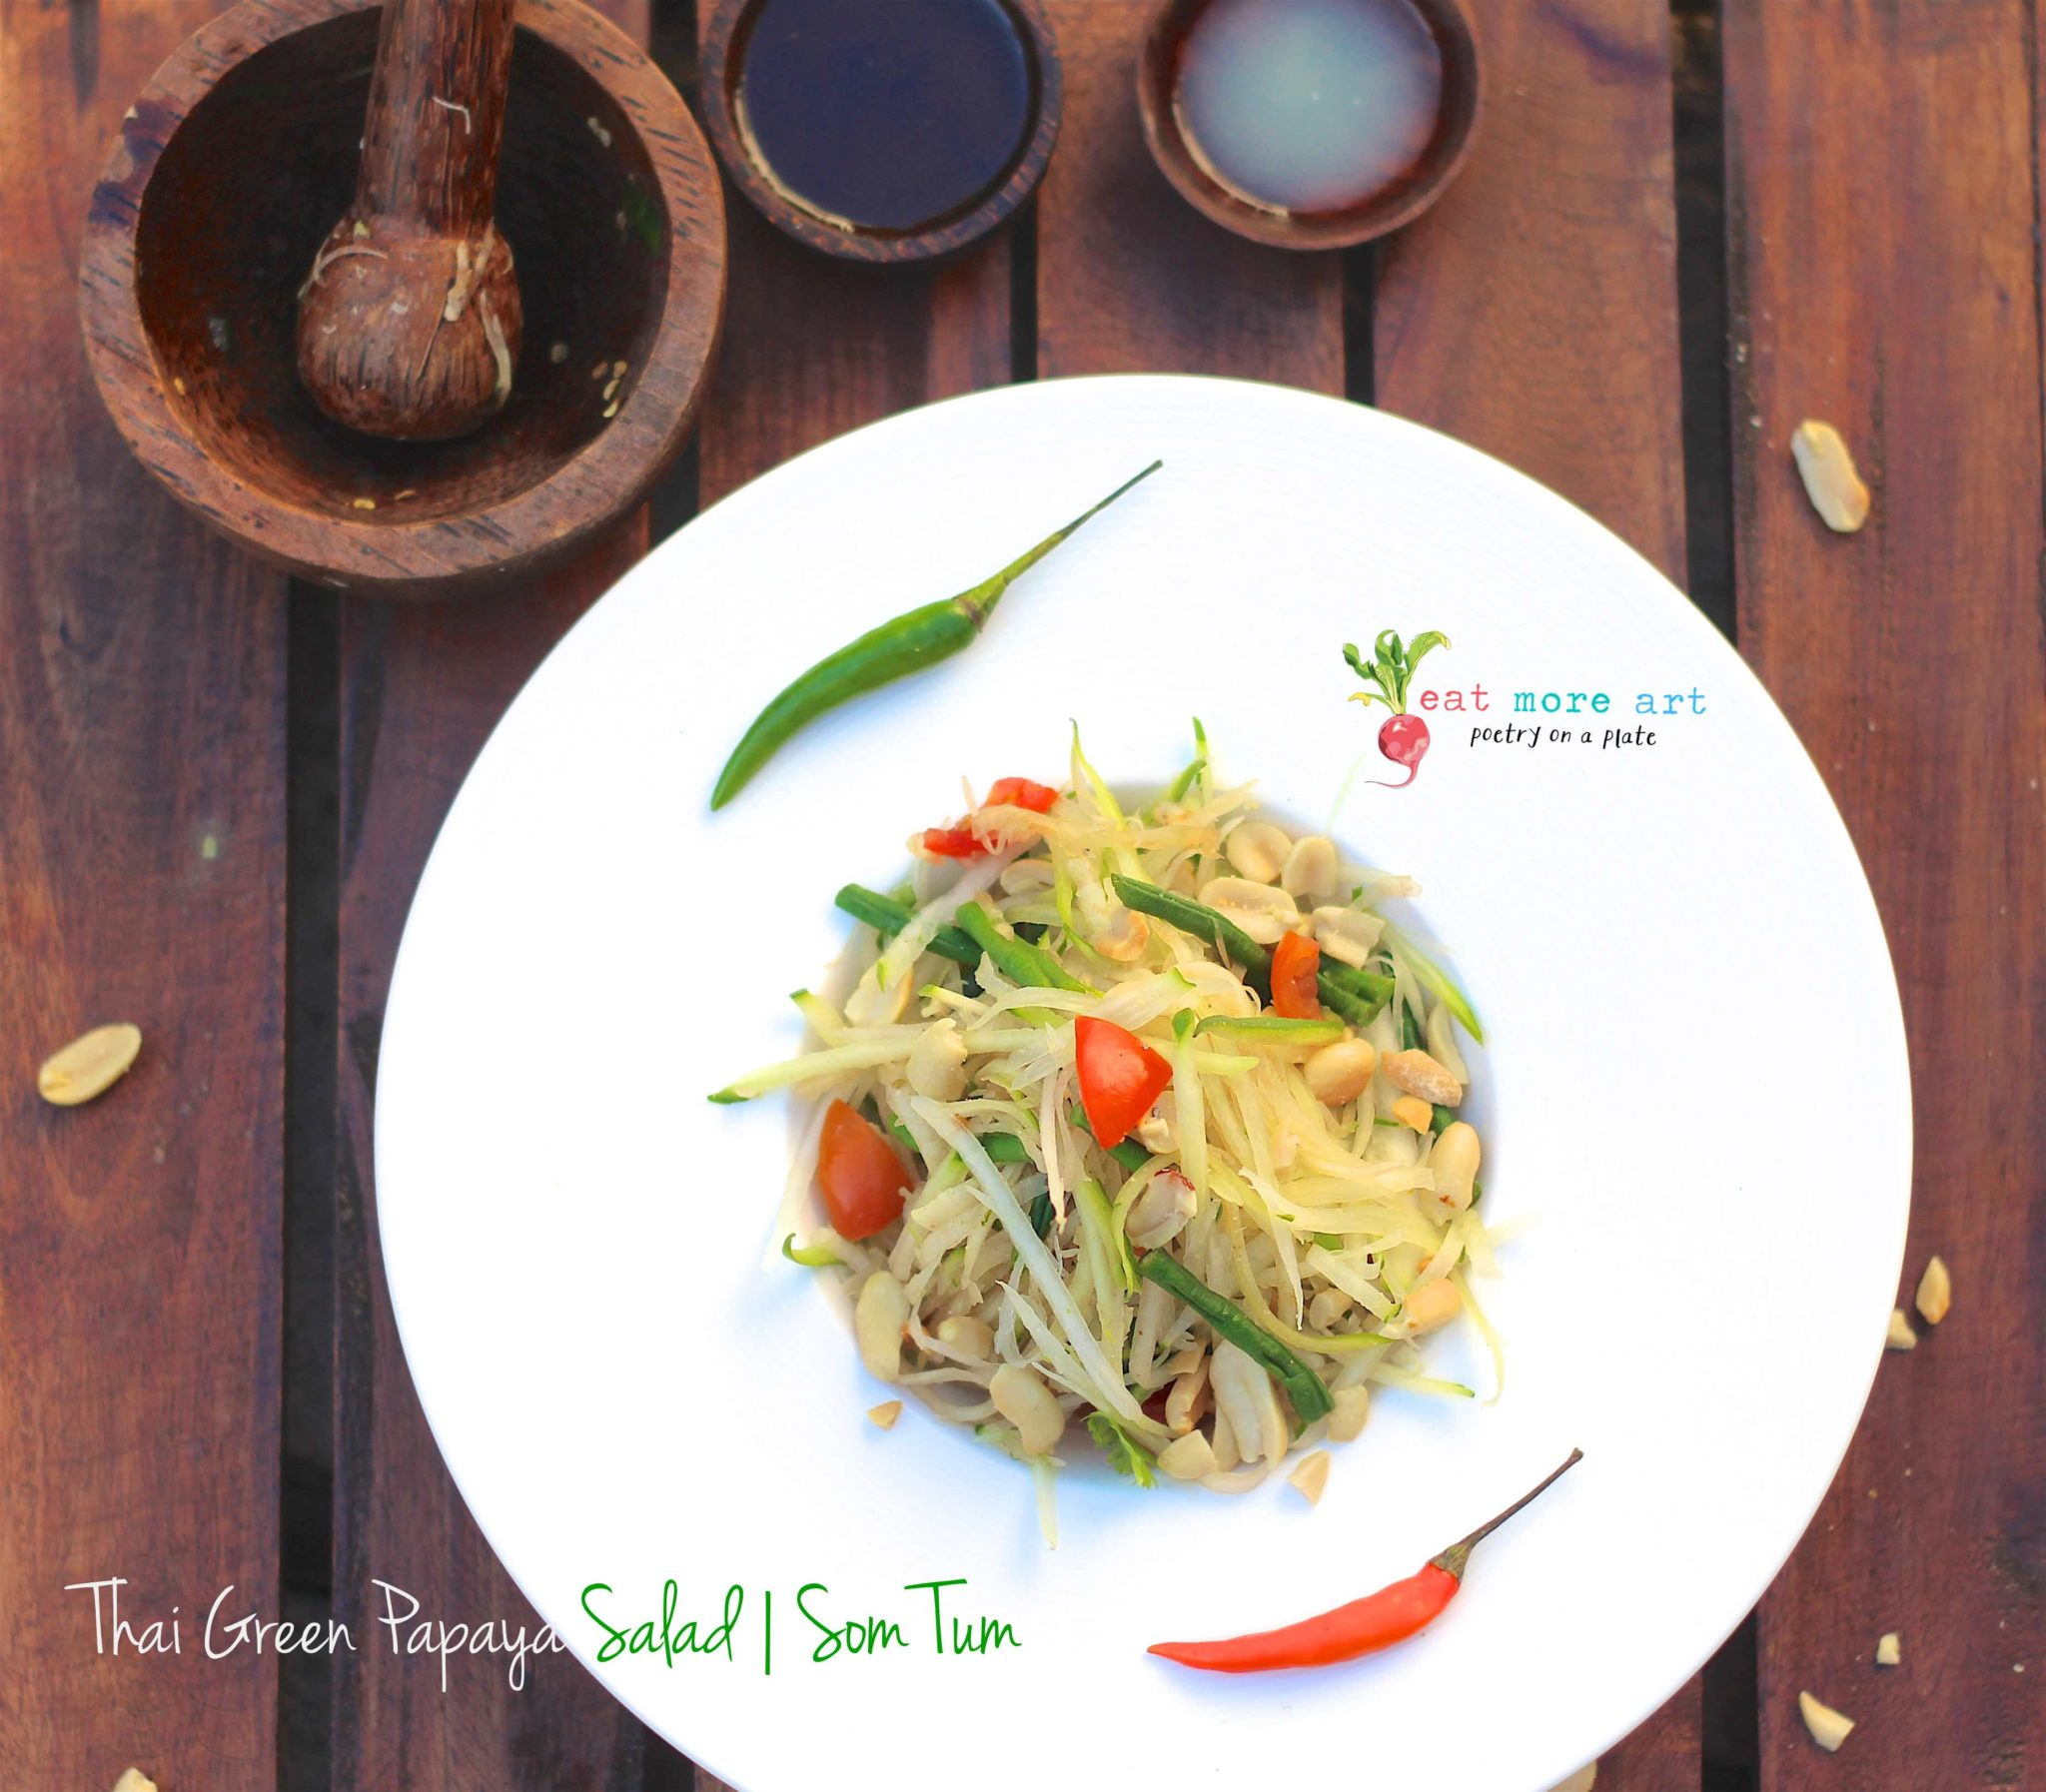 An overshead shot of Thai green papaya salad